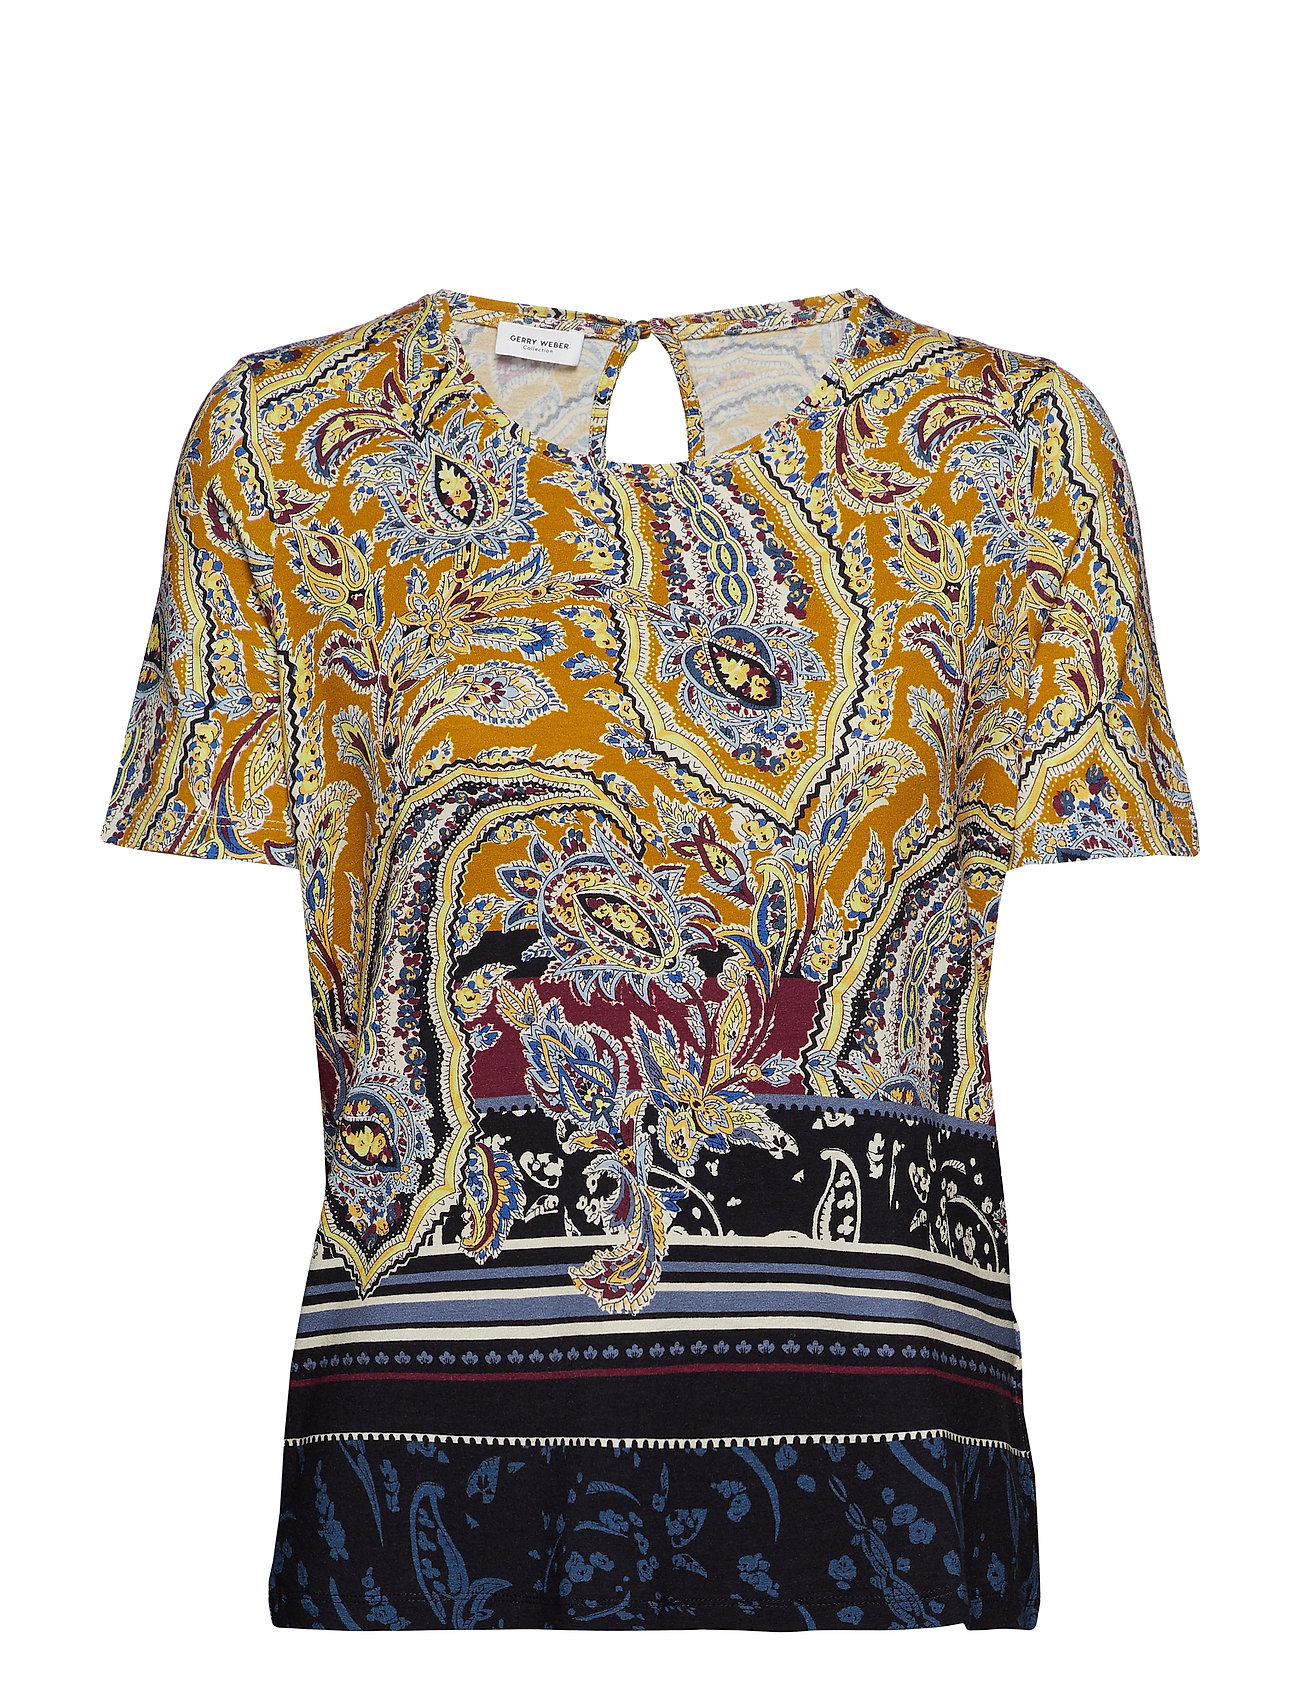 Gerry Weber T-SHIRT SHORT-SLEEVE - YELLOW MULTICOLOR PRINT